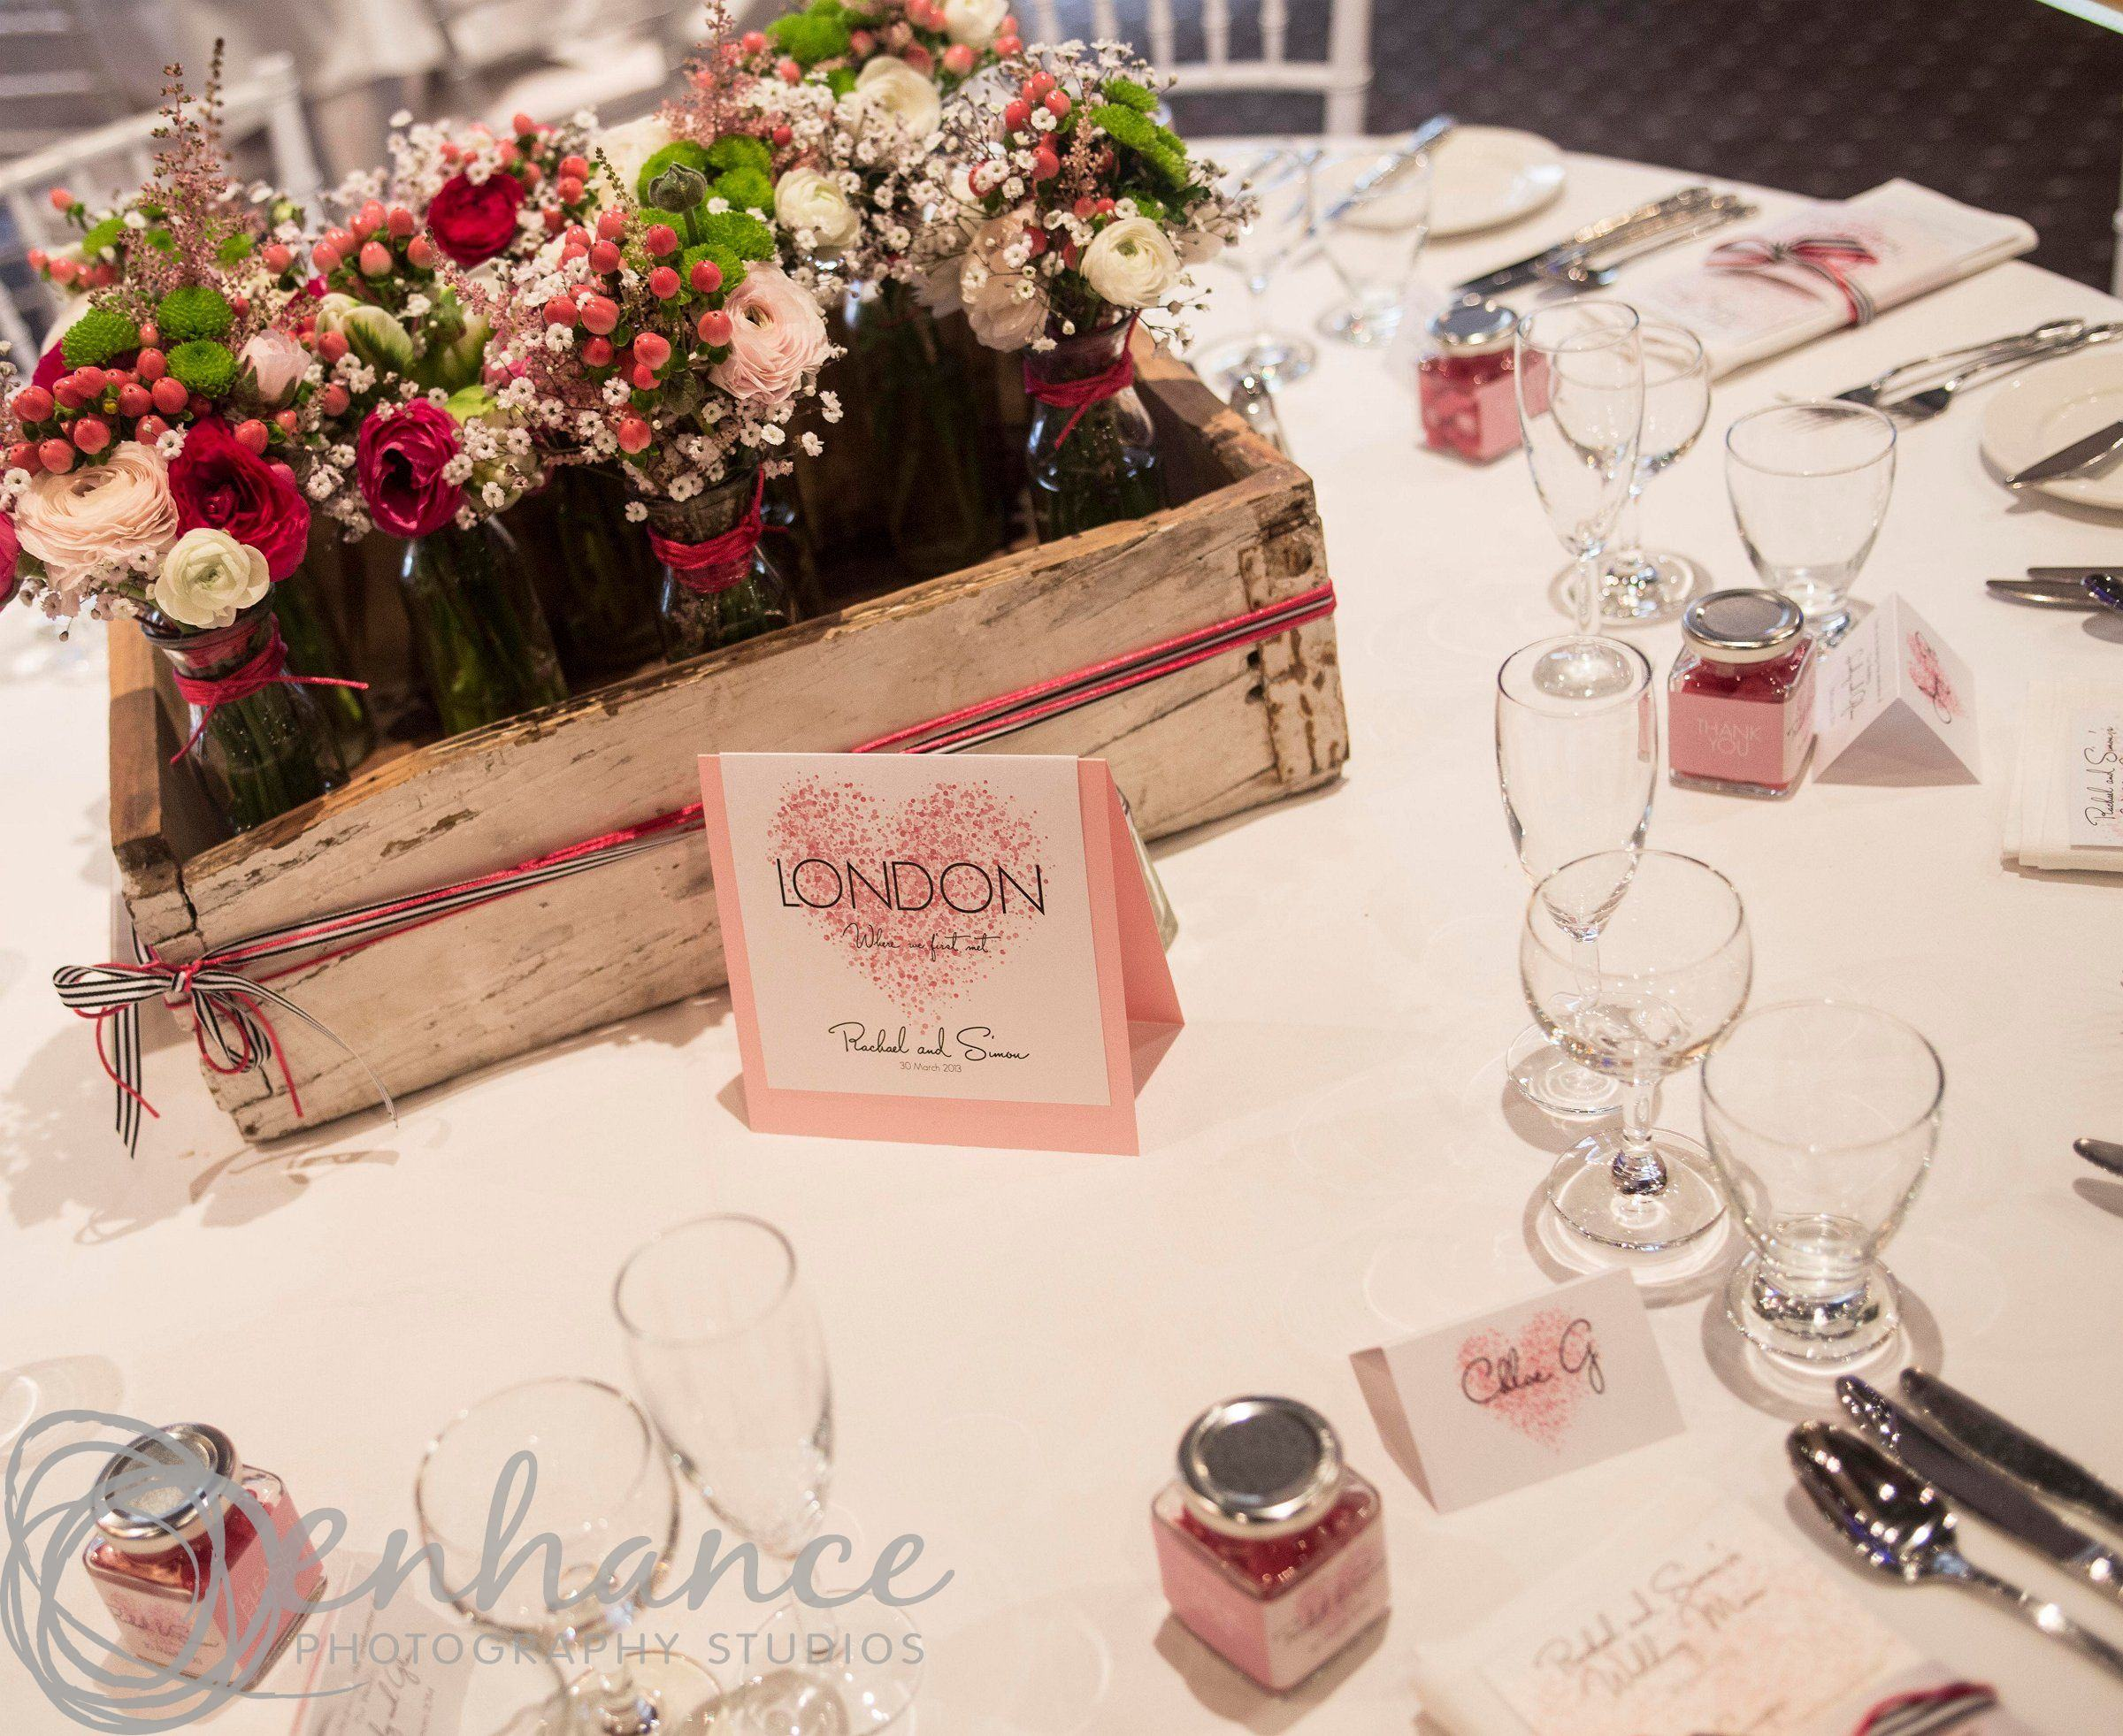 Photo of a table set up for a wedding reception with a wooden box filled with flowers